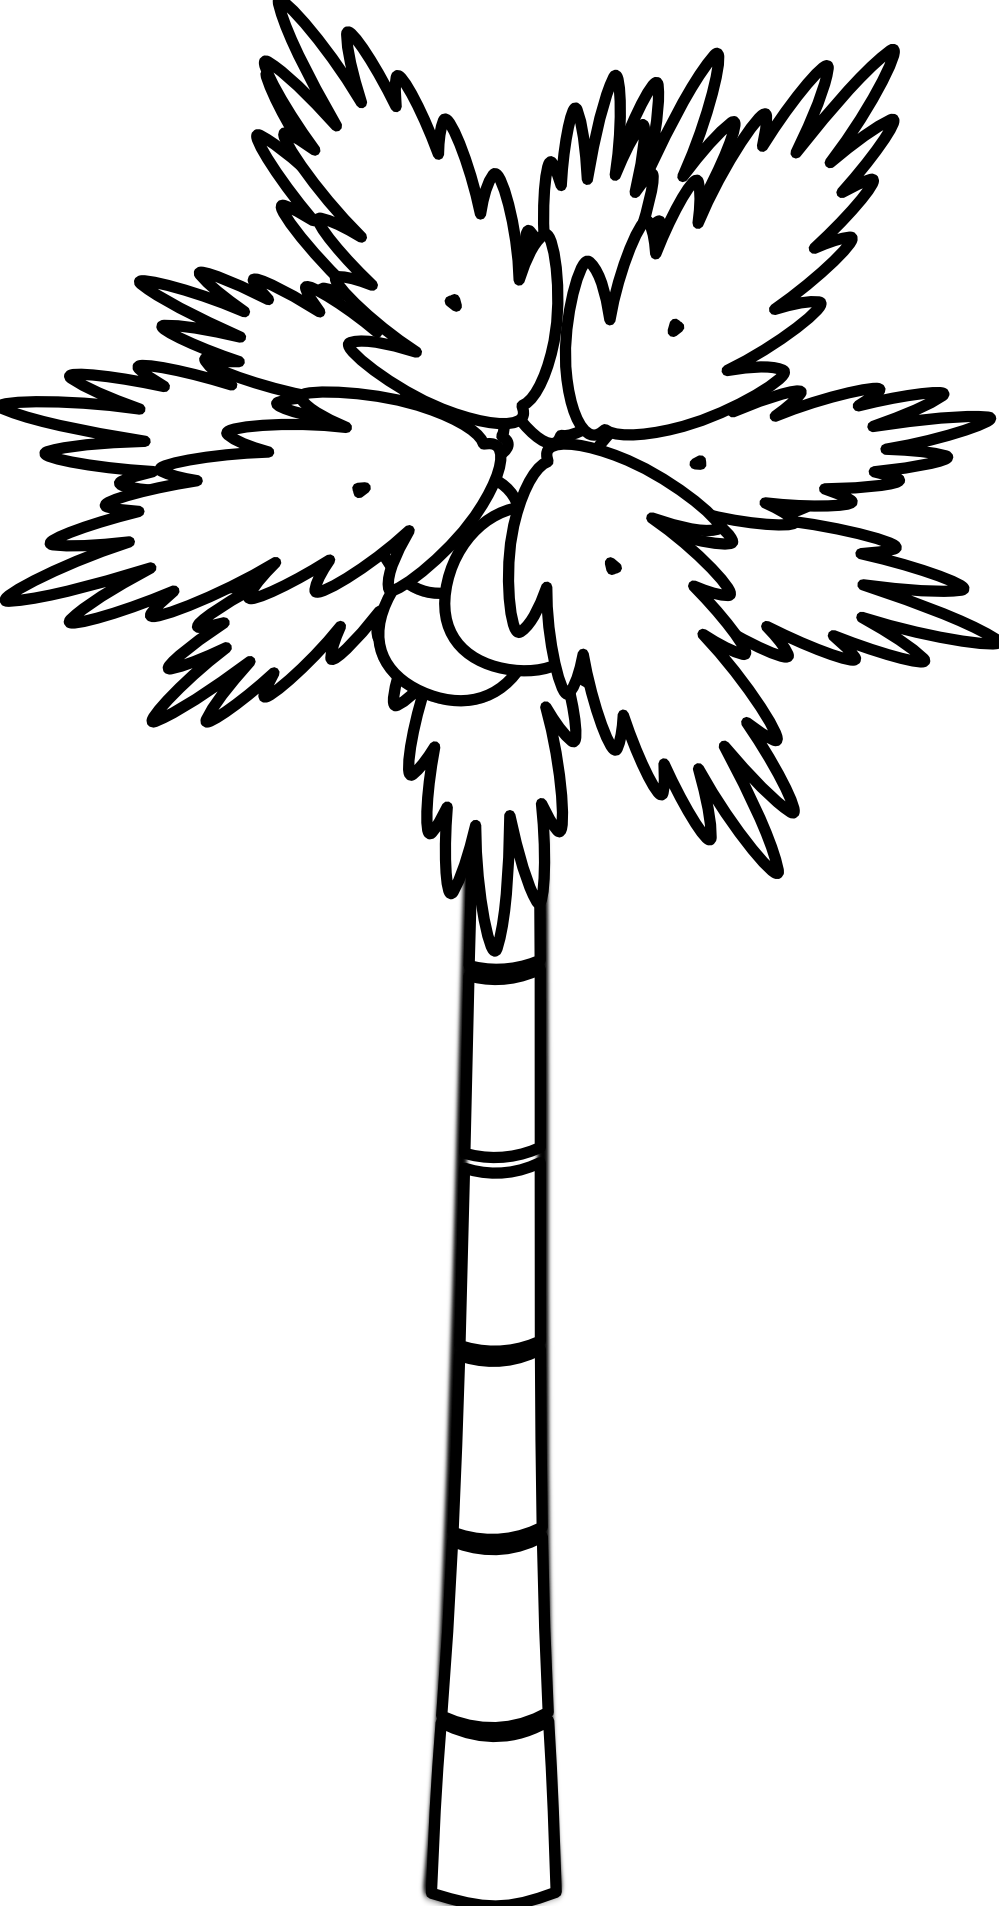 Palm Tree Clipart Black And White-palm tree clipart black and white-10